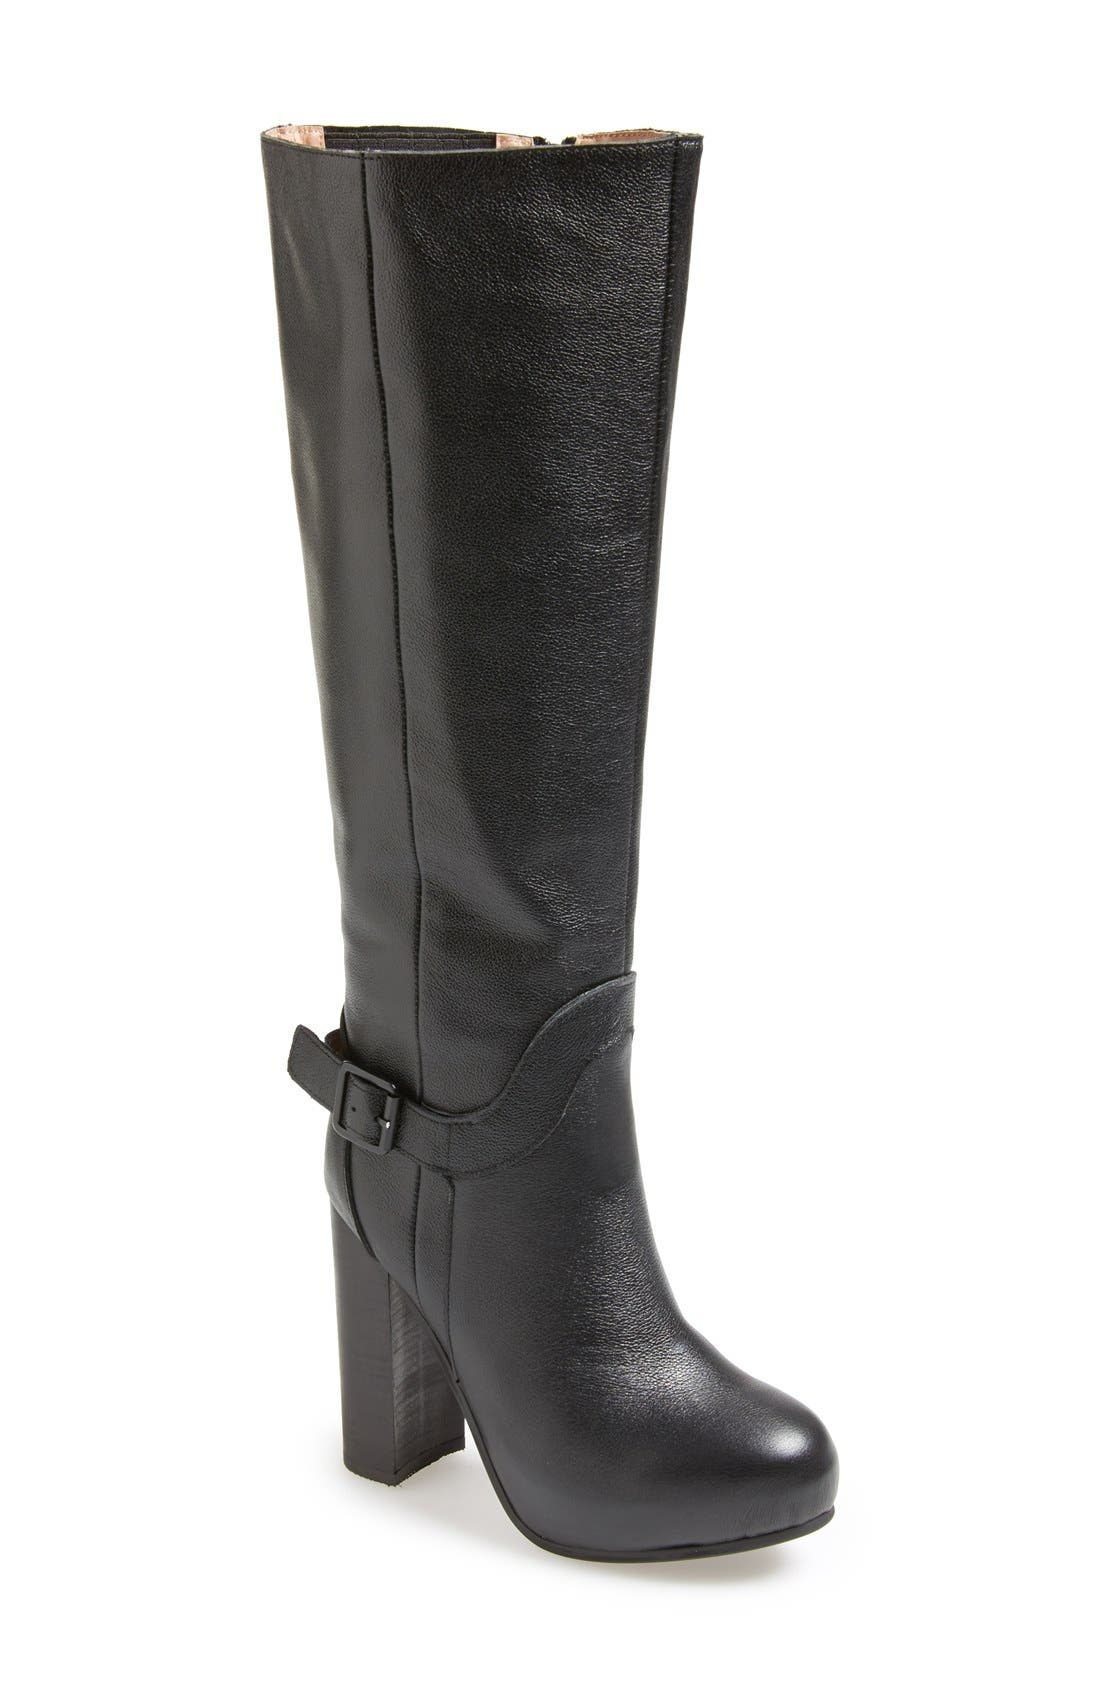 Main Image - Jeffrey Campbell 'Tenor' Knee High Leather Boot (Women)